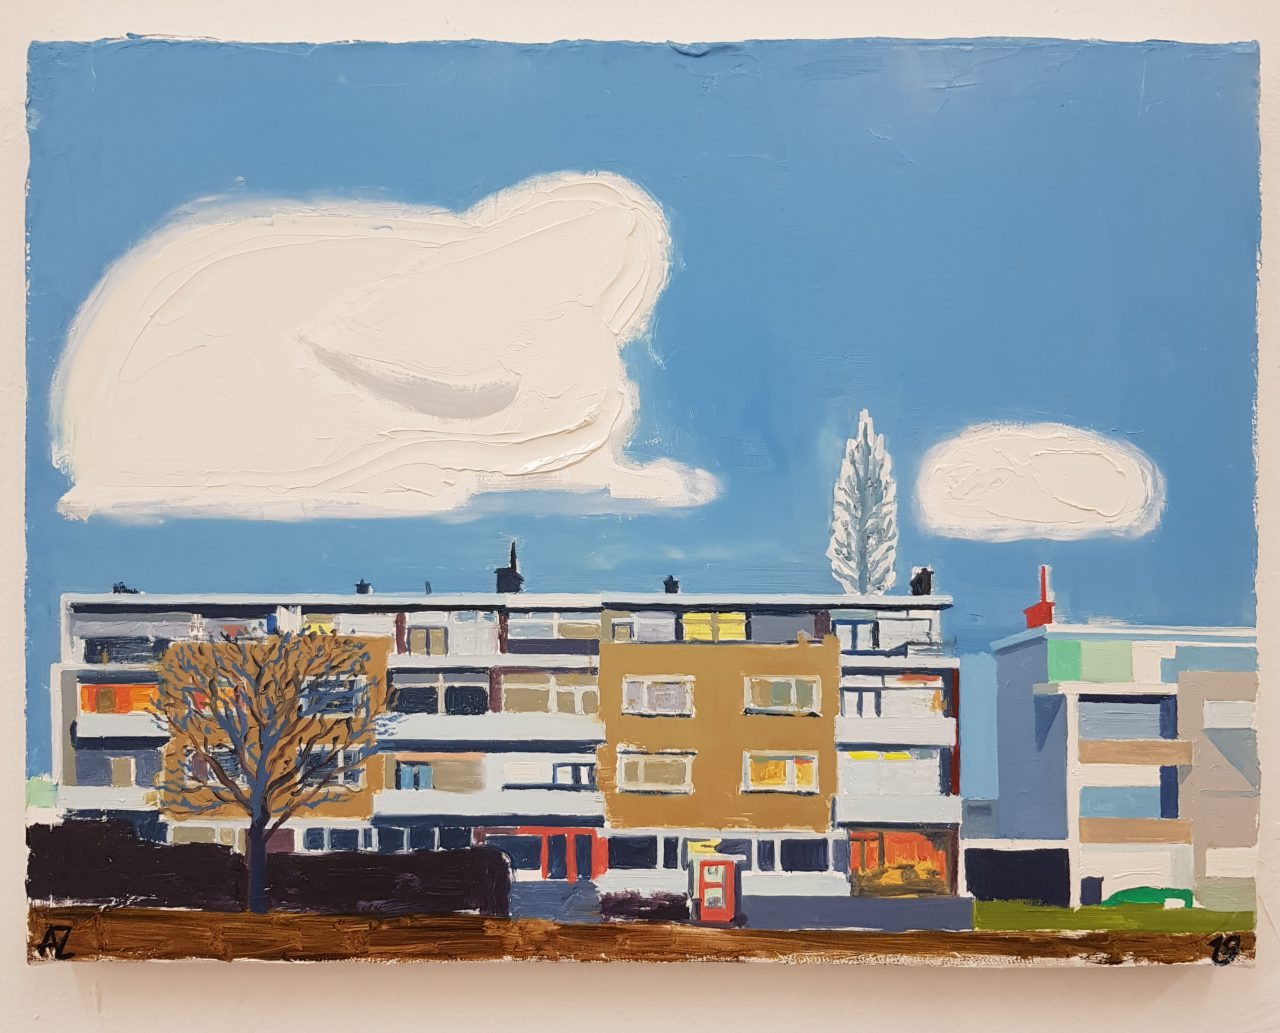 Dutch Landscape with apartment buildings, 2019. Oil on linen, 30x40cm.